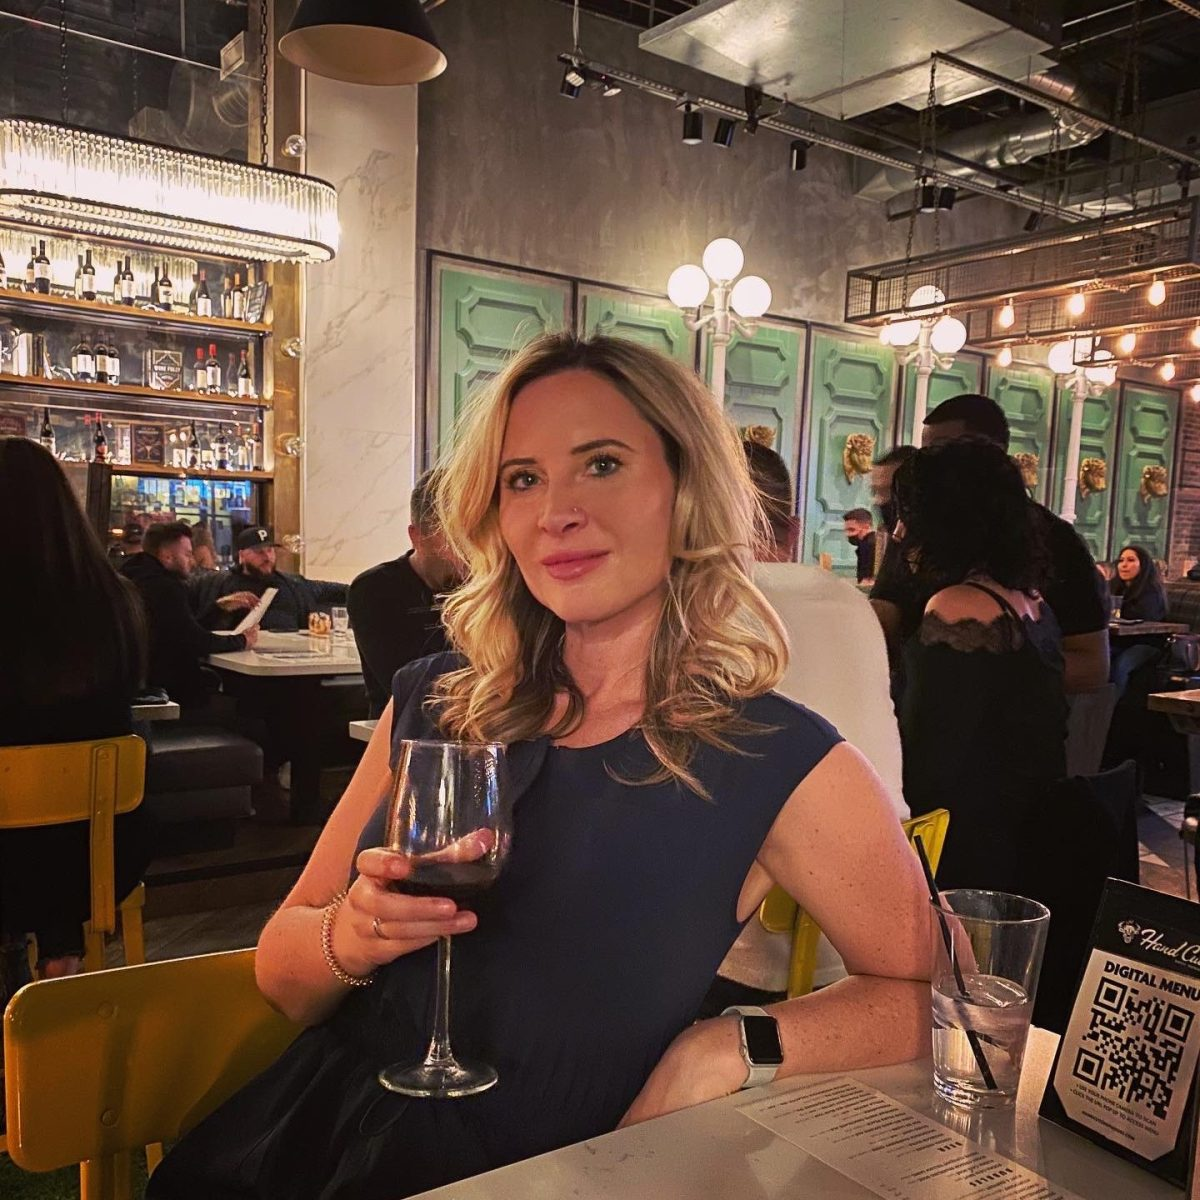 beautiful blonde woman with a glass of wine